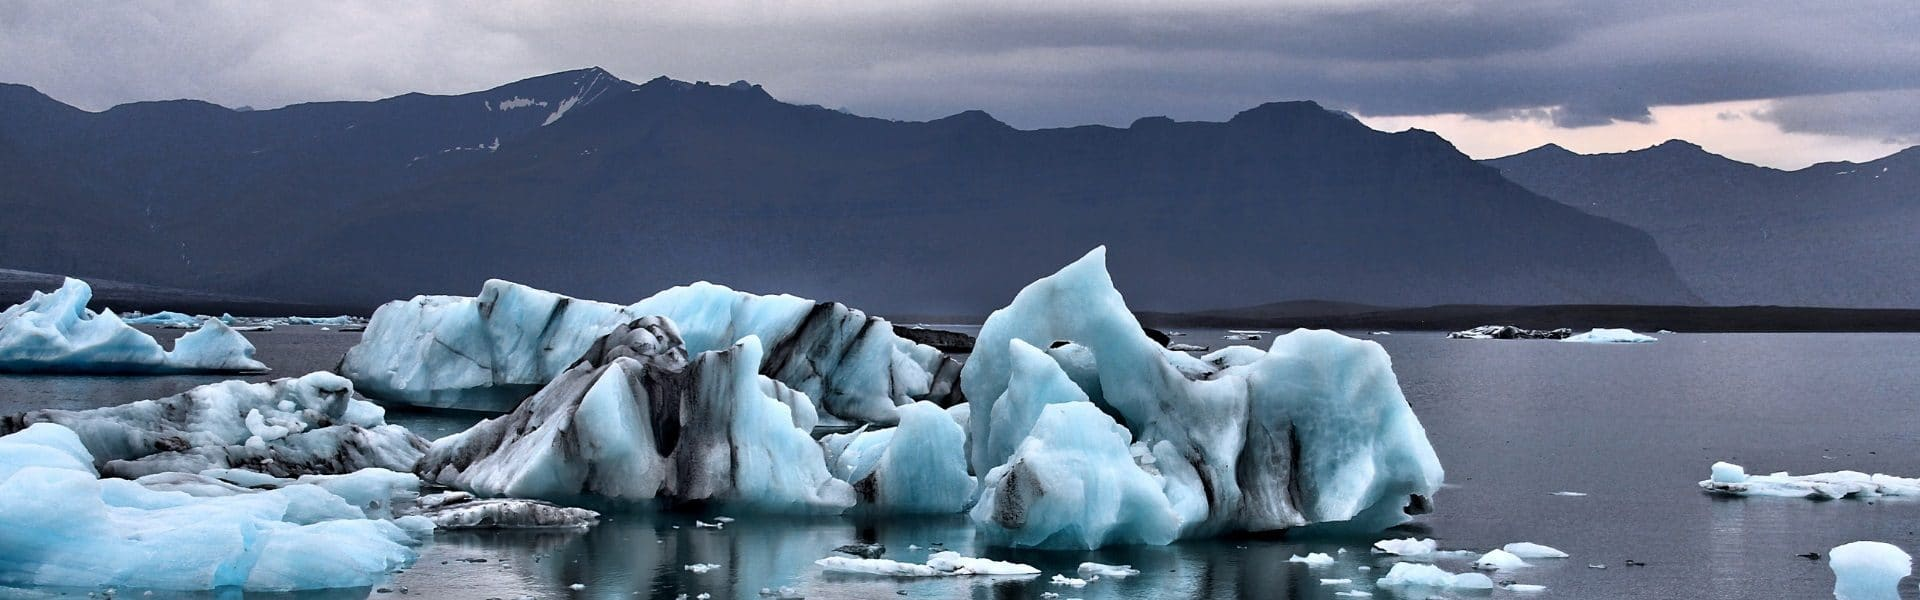 Bluey white icebergs in the water